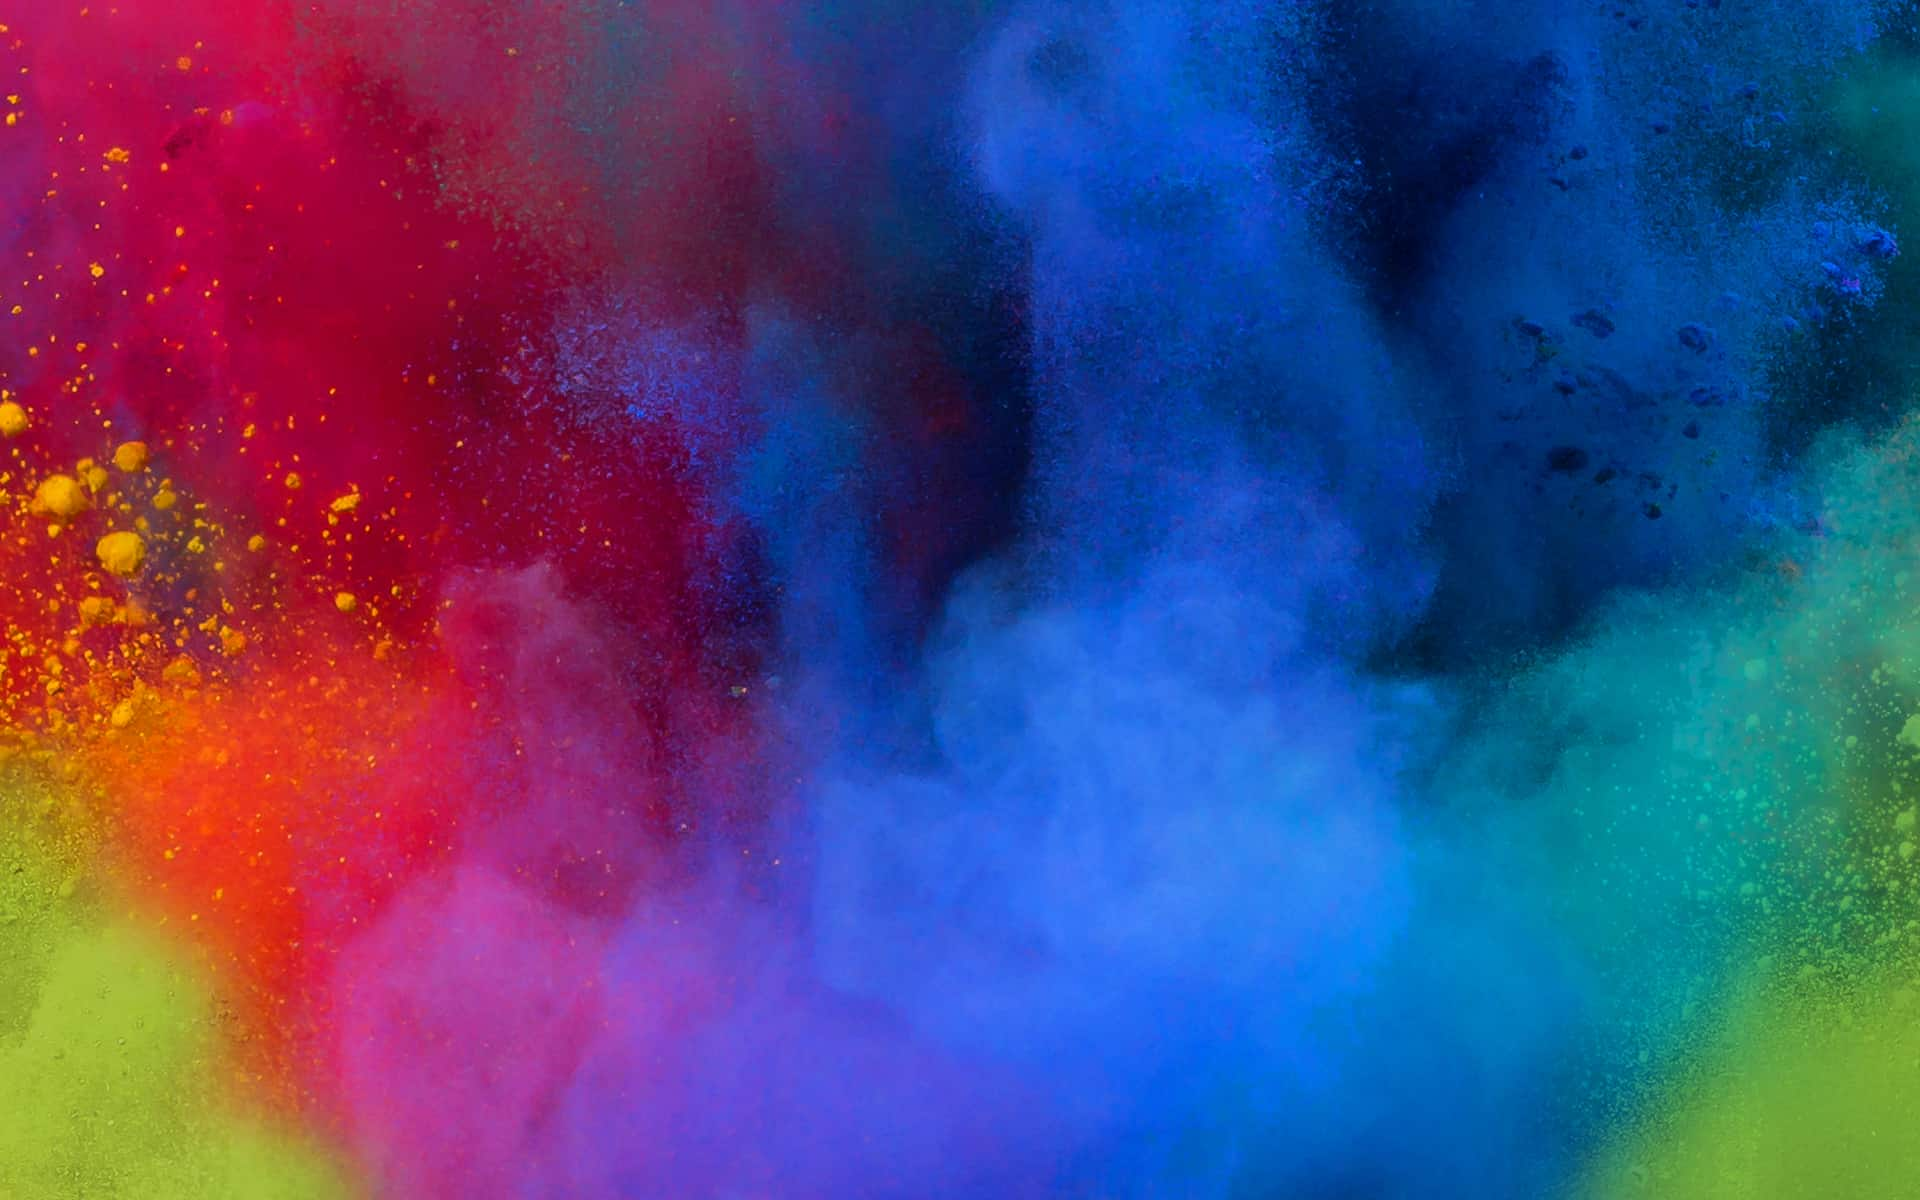 Colour powder explosion image